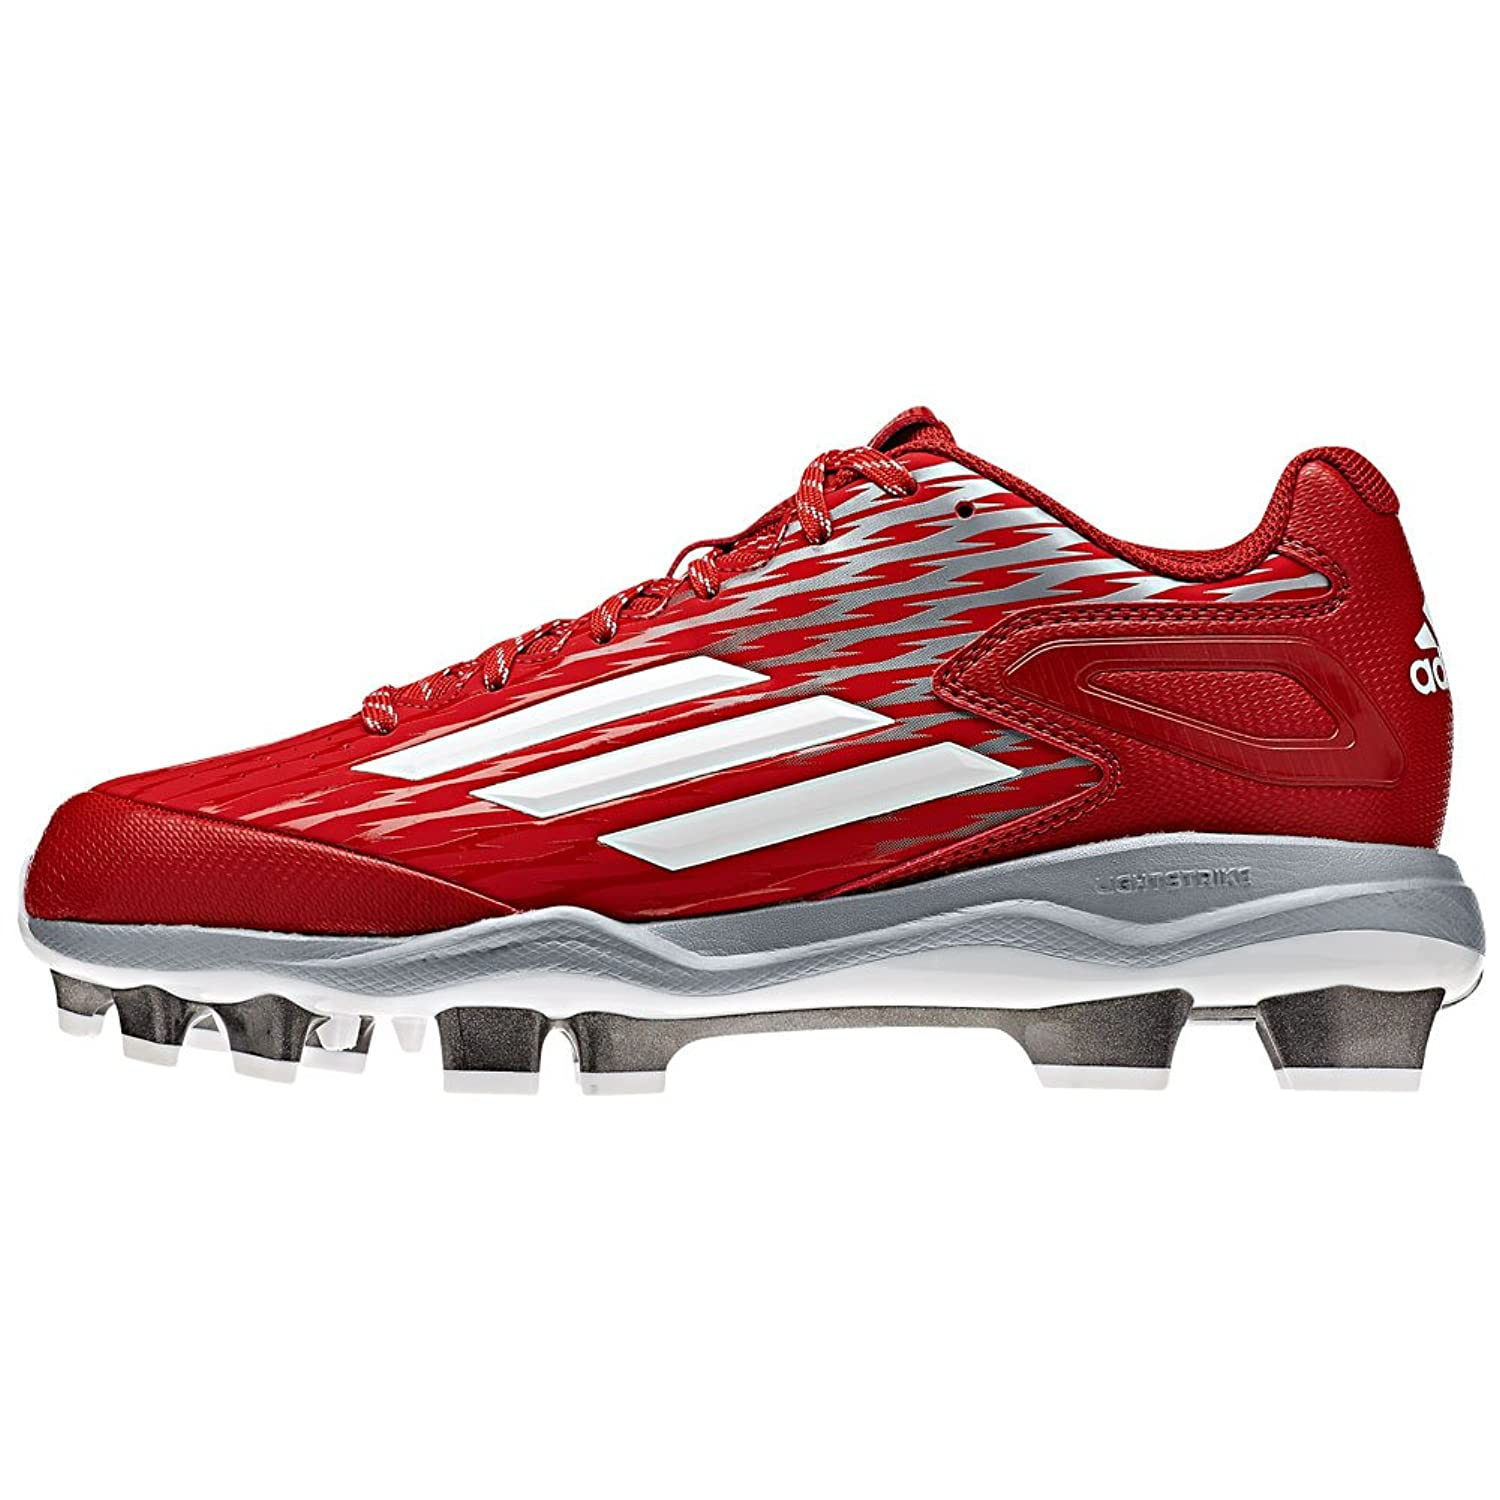 Adidas Women's Poweralley 3 Low Tpu Softball Cleats, Red/White, SZ 8